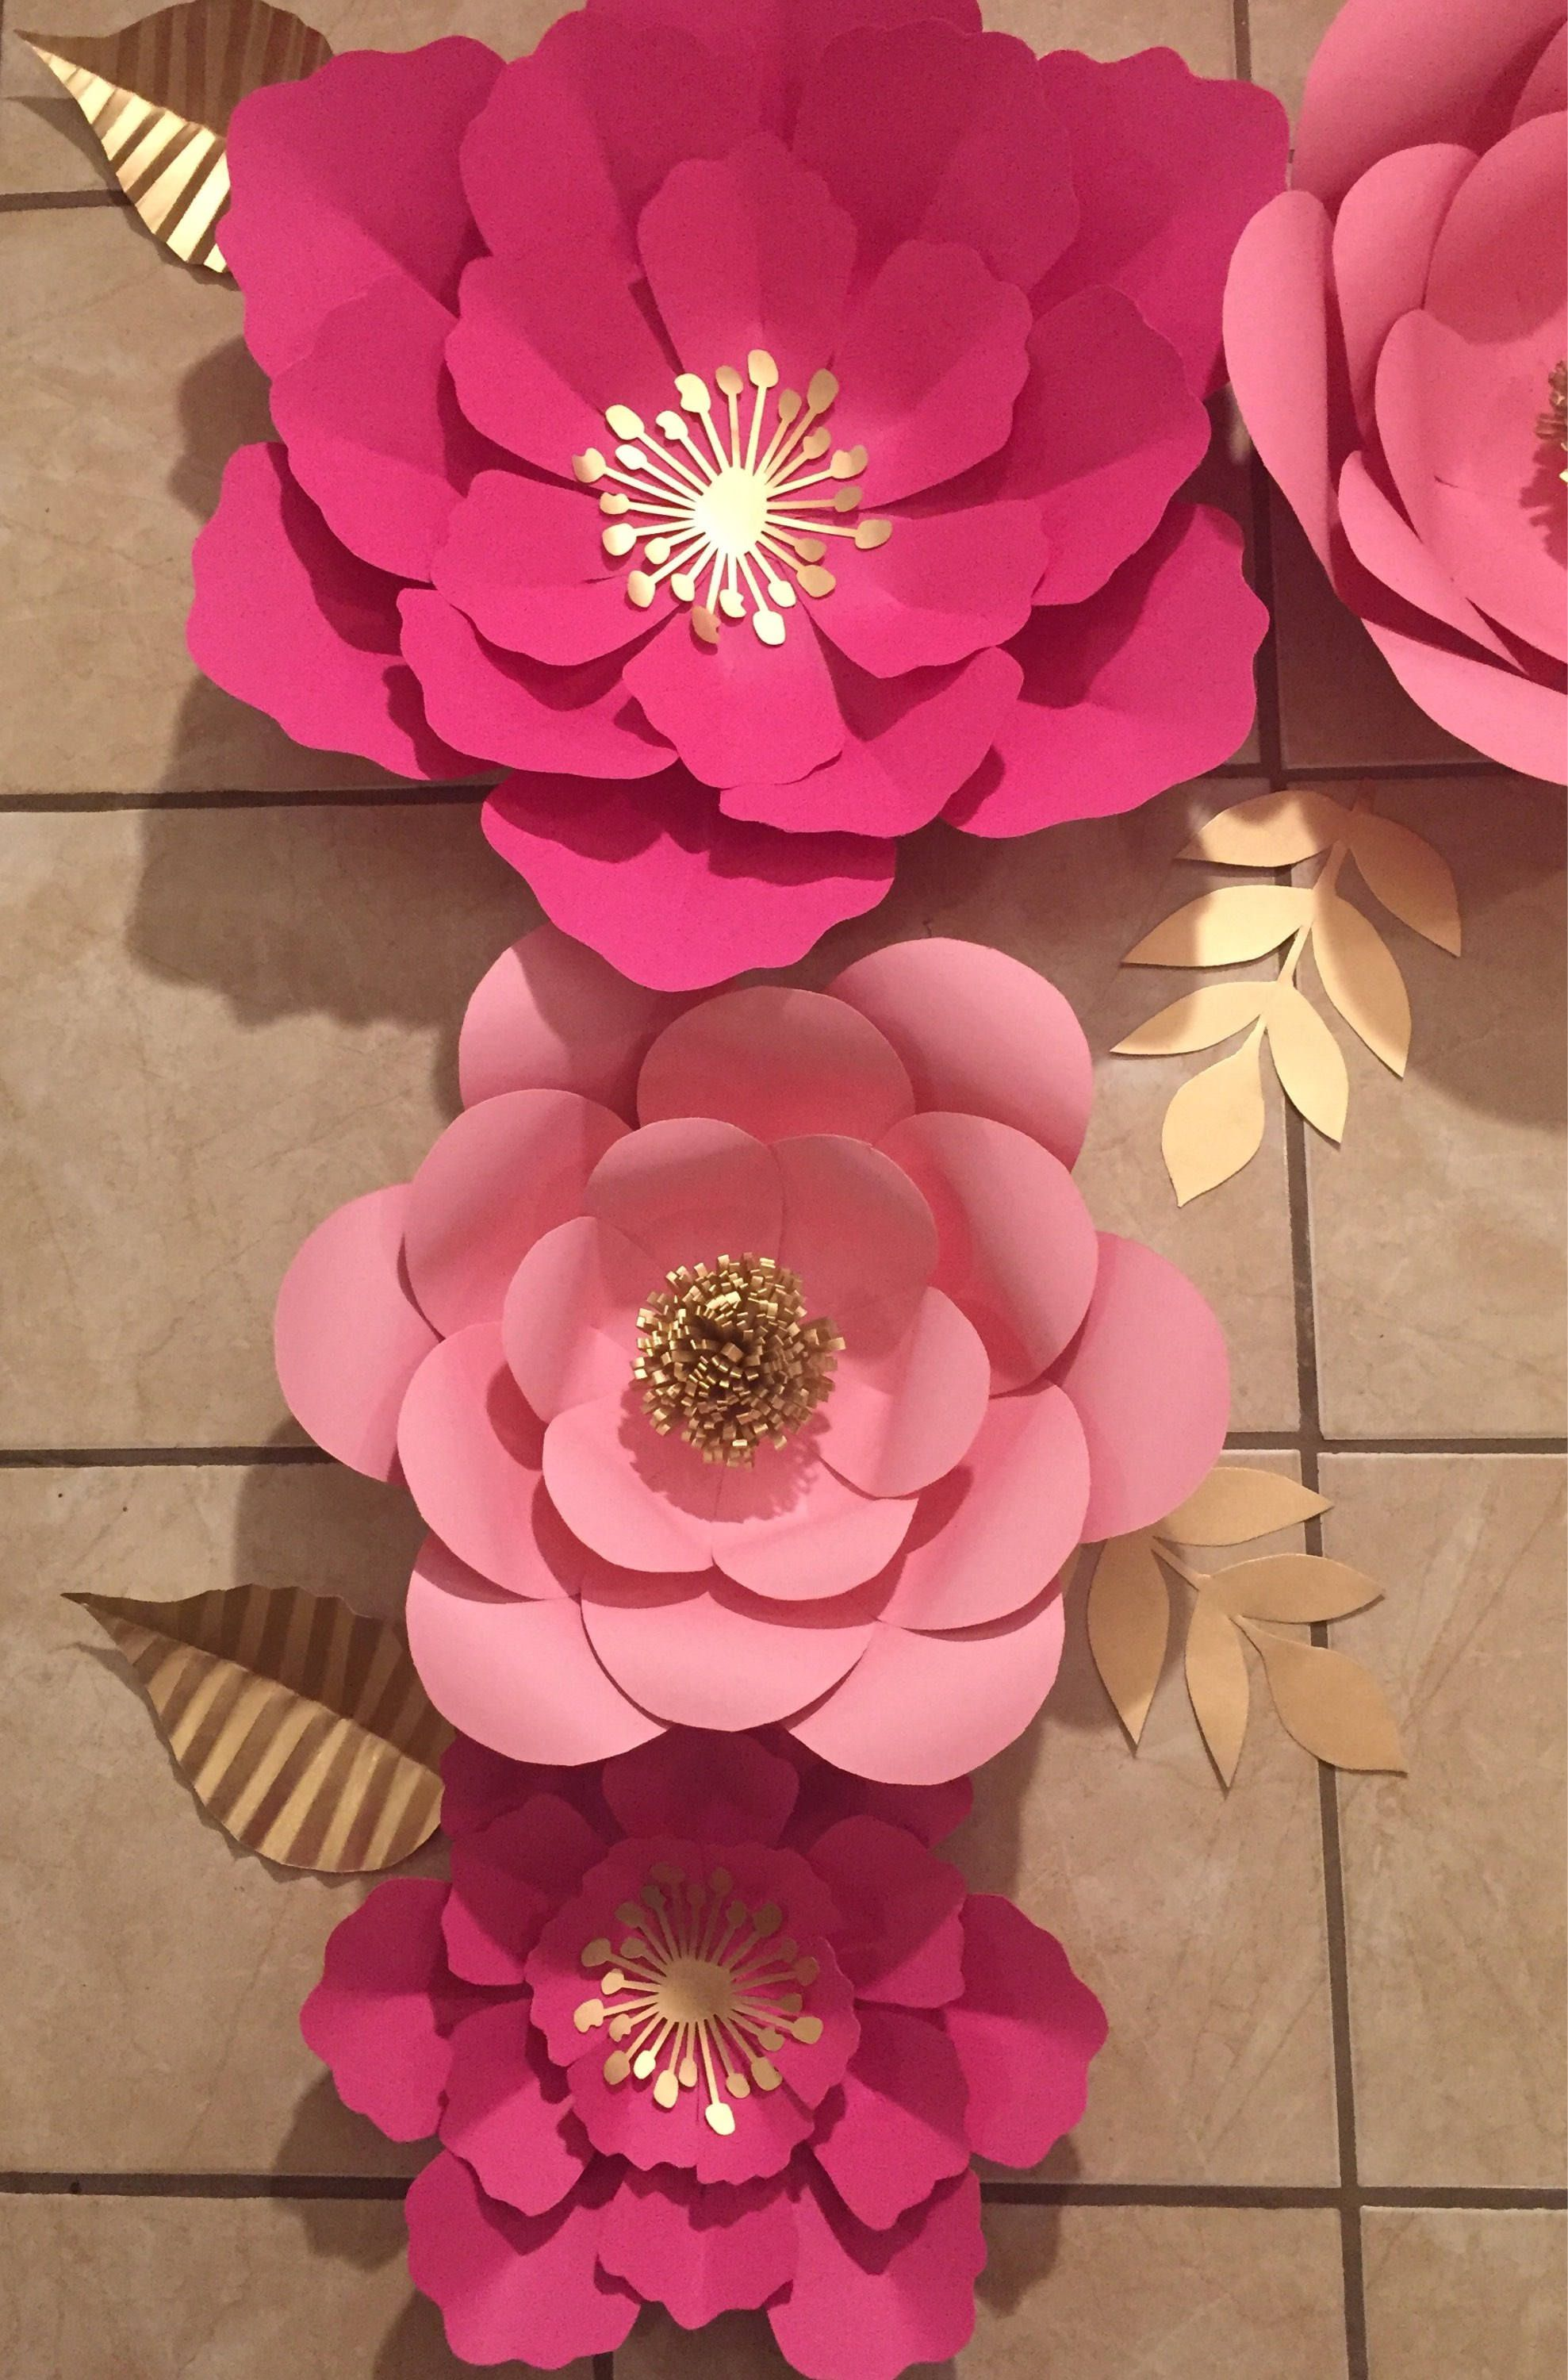 7pc Pink Giant And Gold Paper Flower Backdrop Party Decor Paper